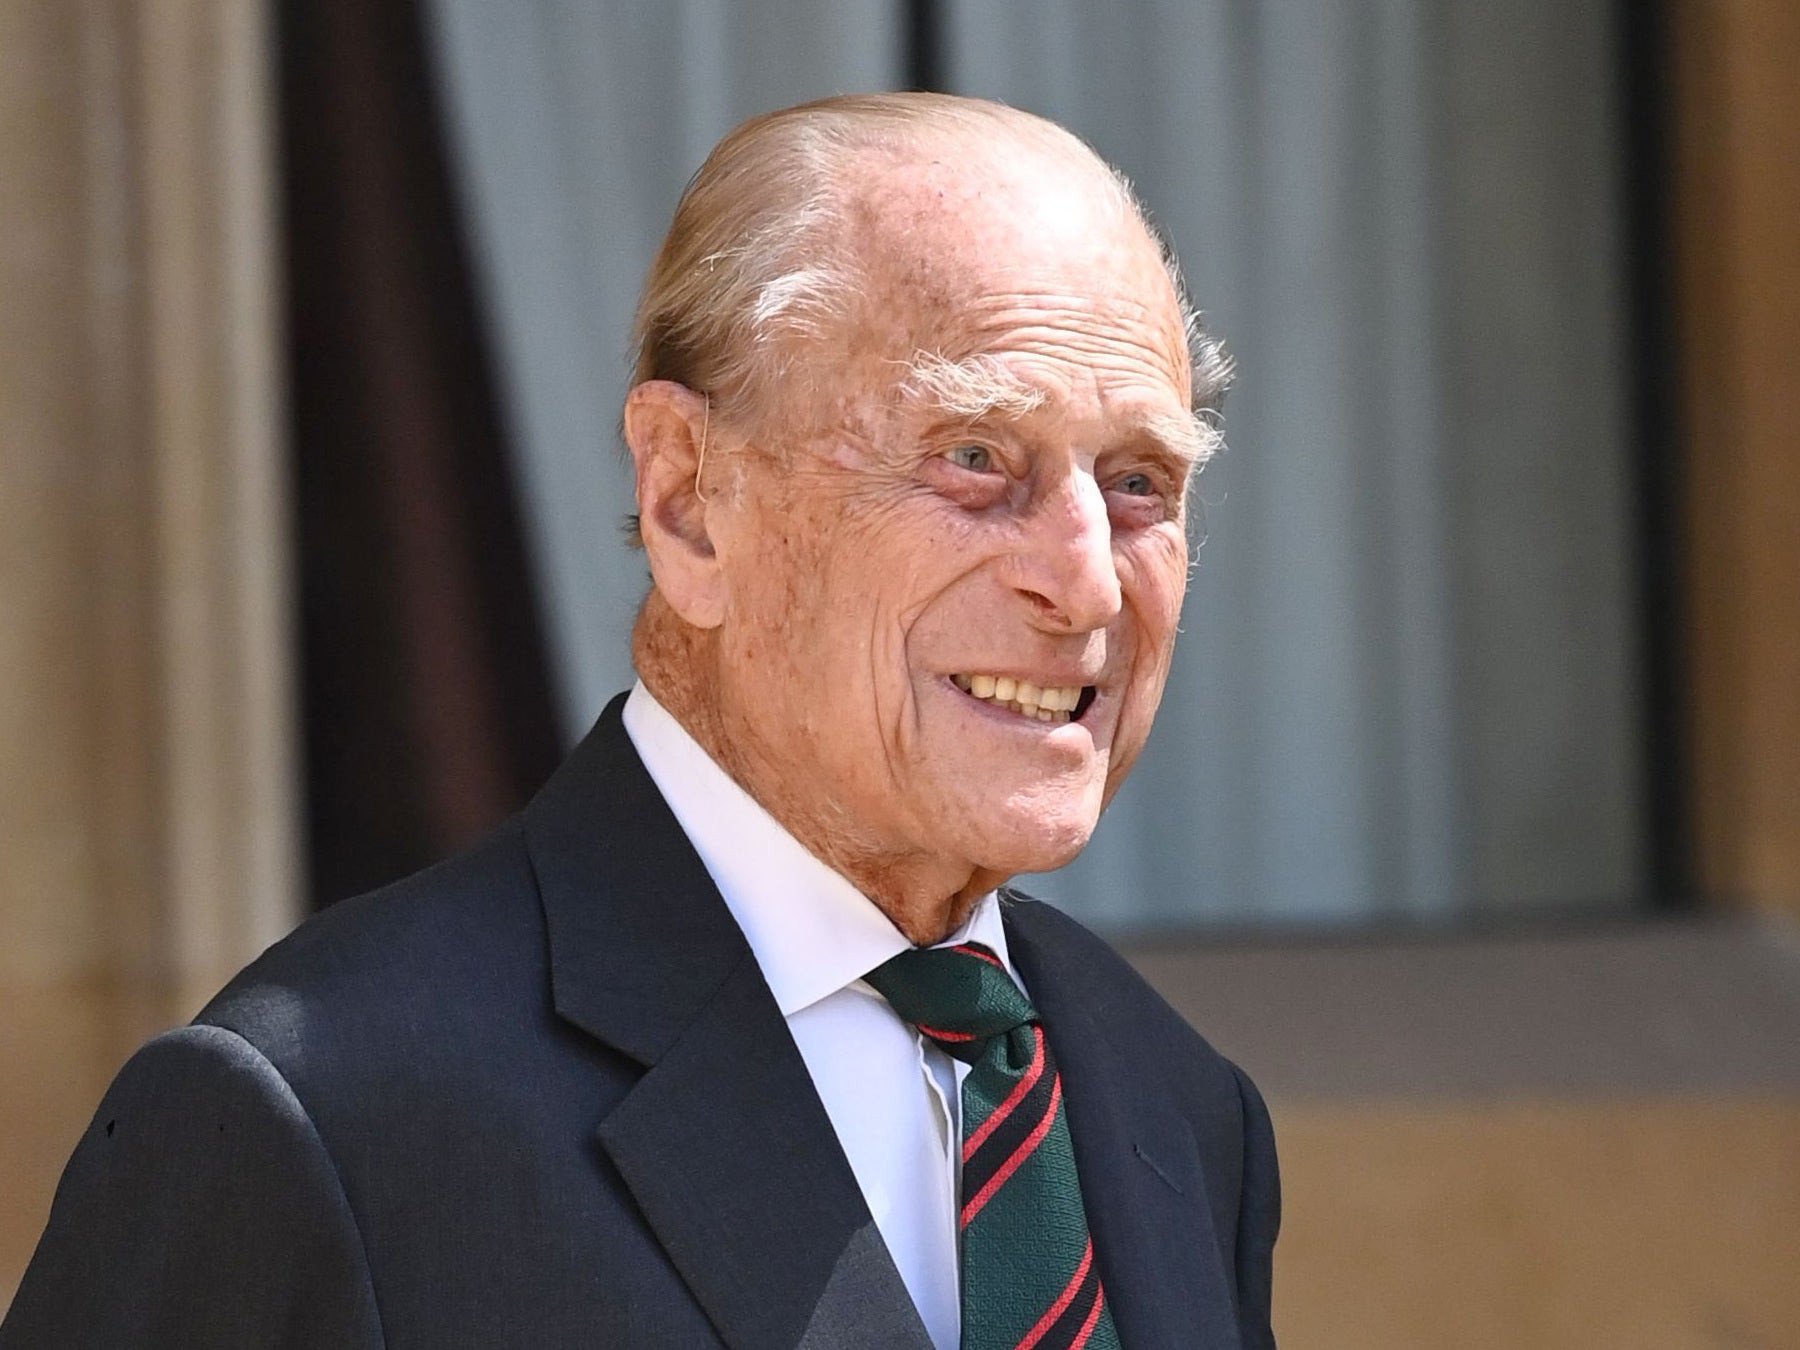 Prince Philip makes rare appearance in veterans photo montage